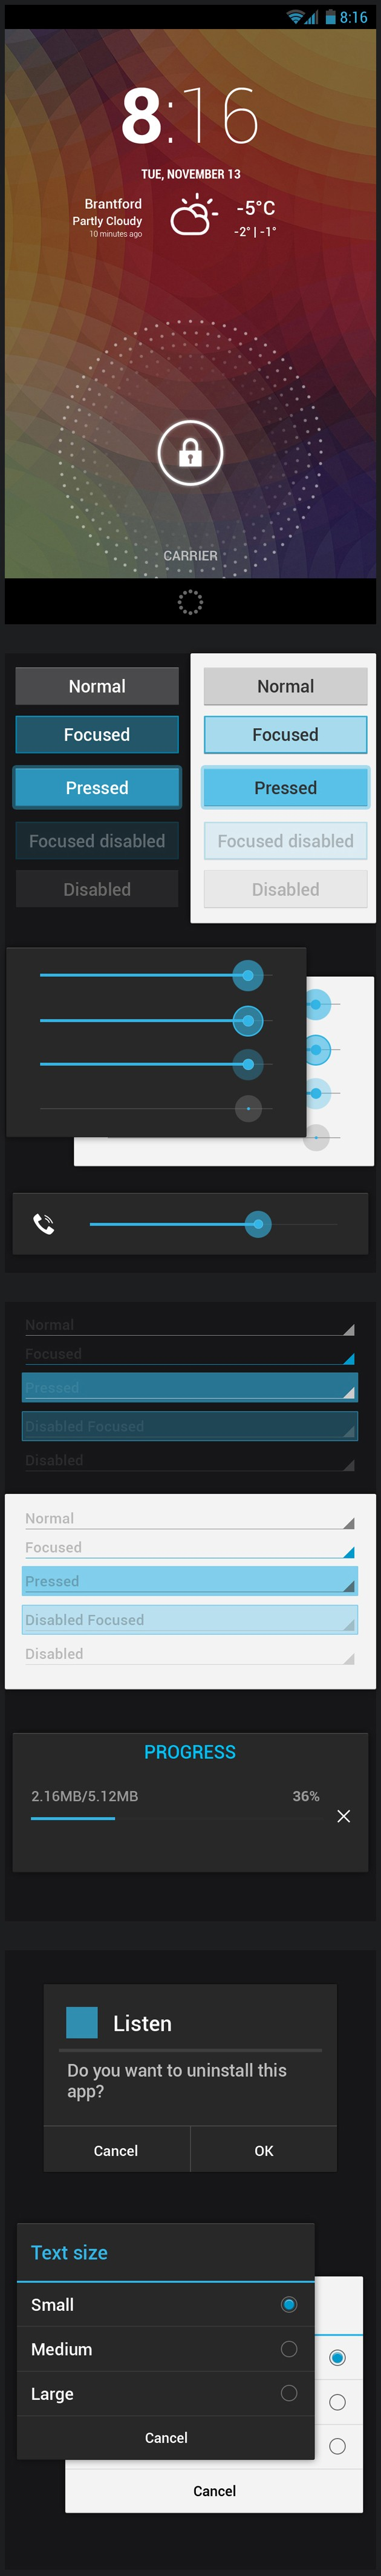 Android gui 02